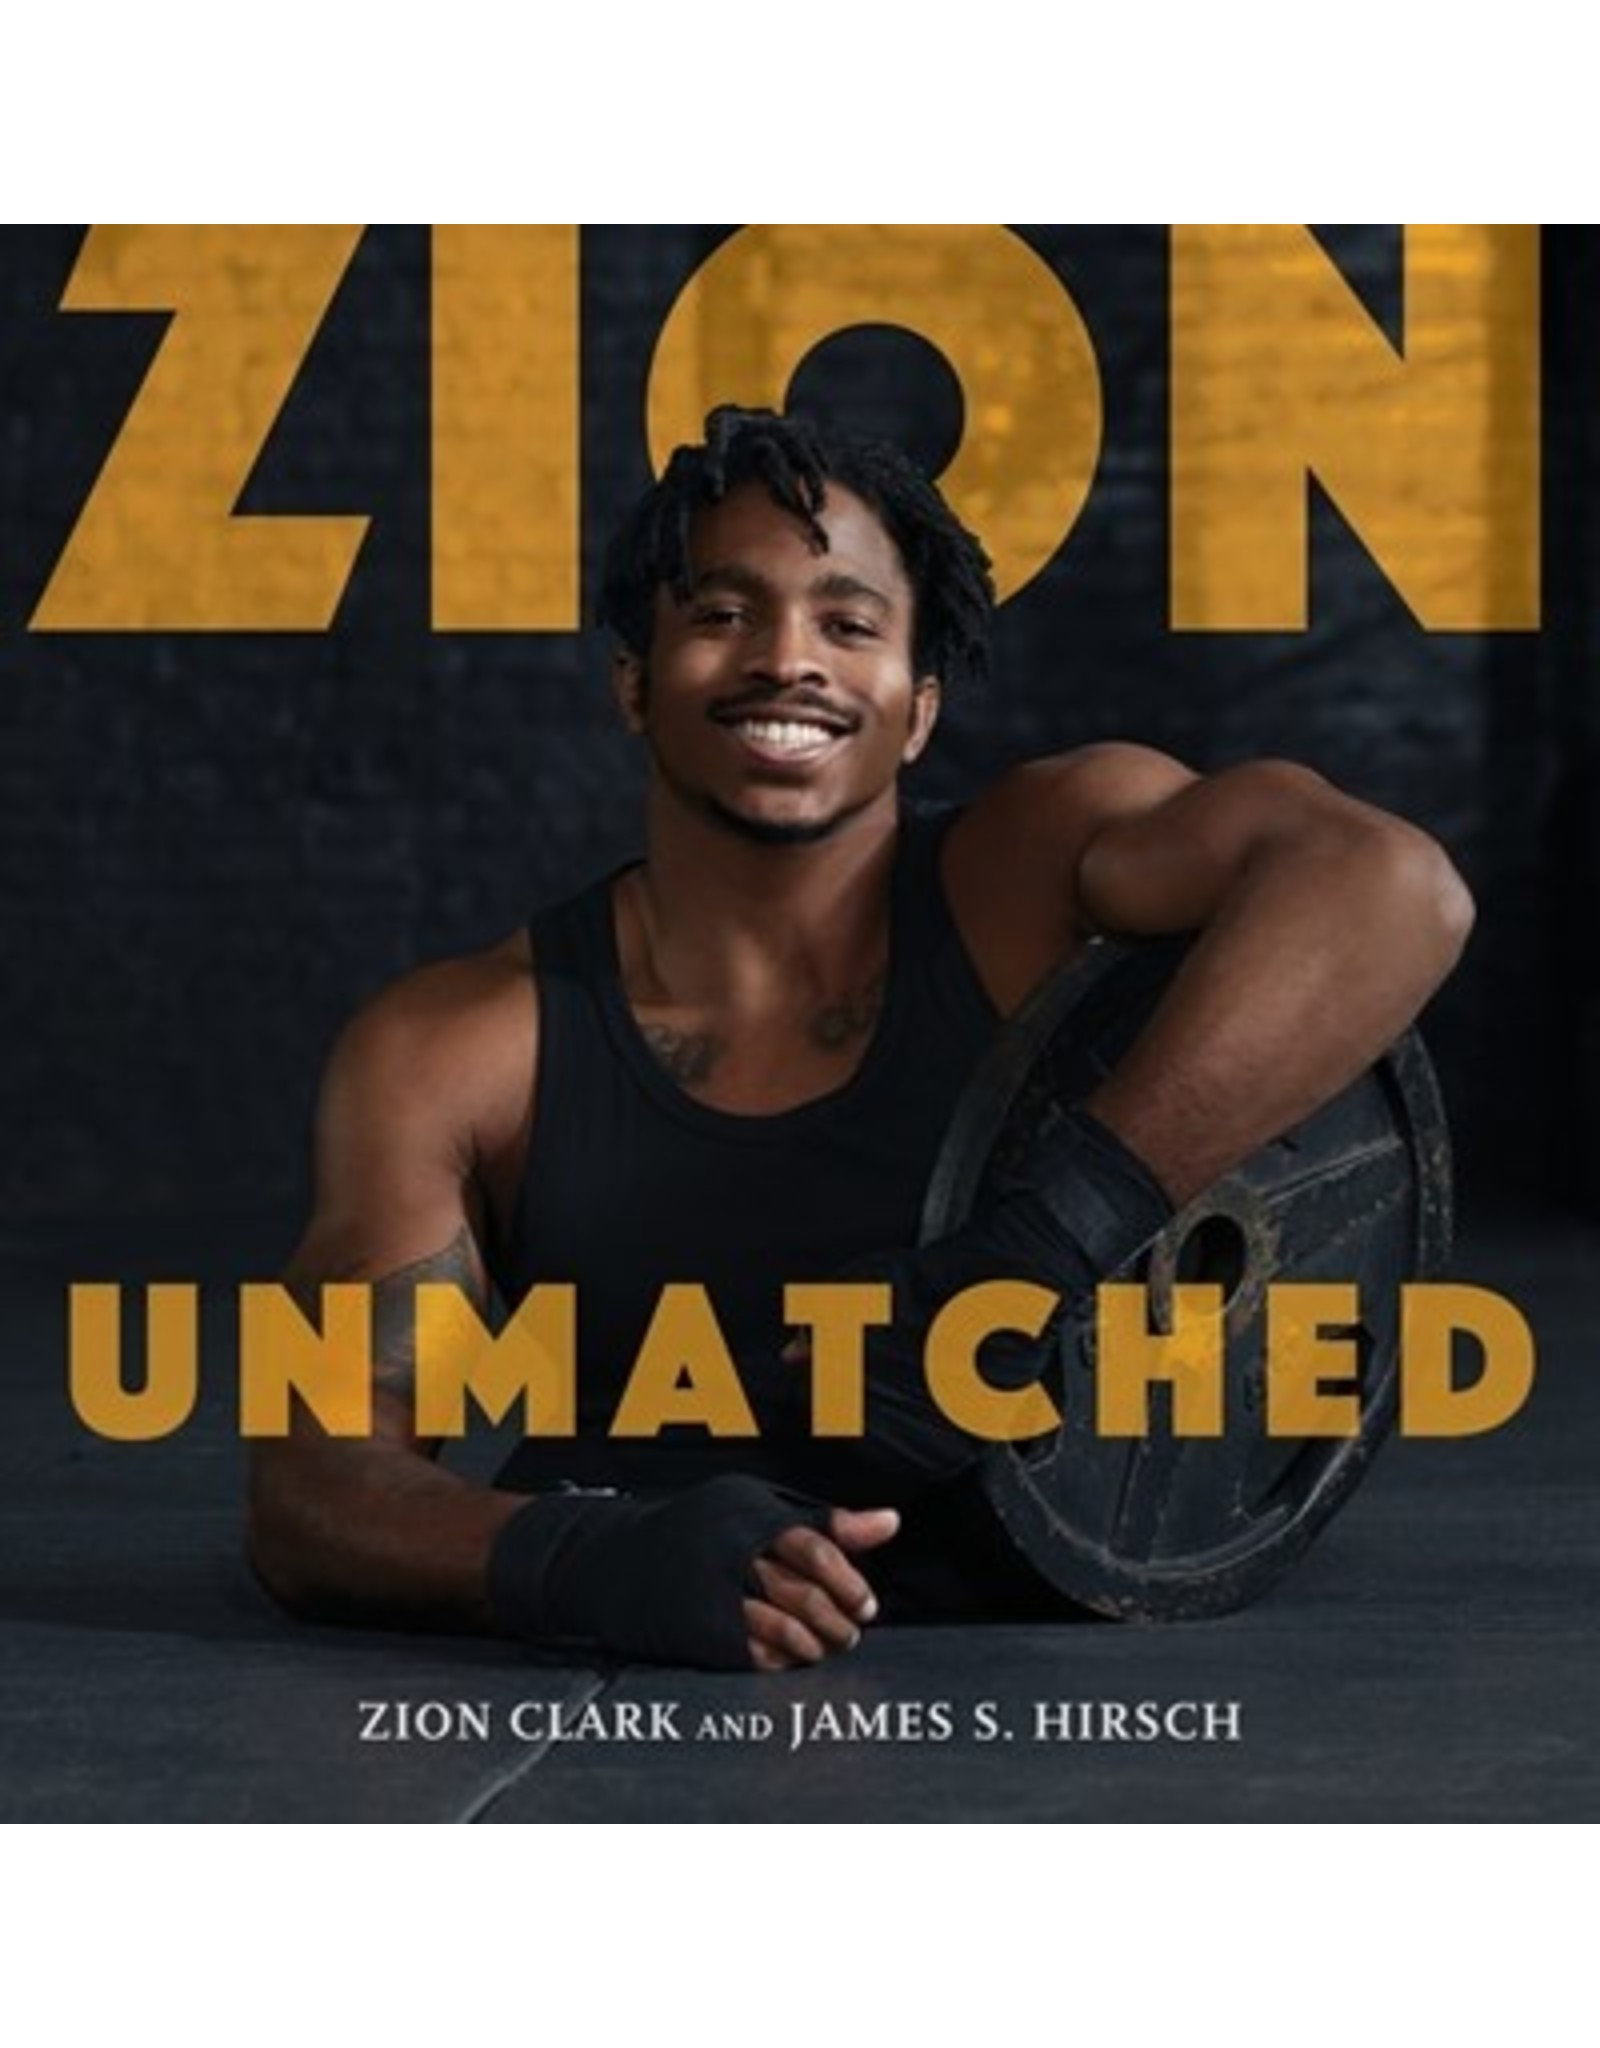 Books Zion : Unmatched by Zion Clark and James S. Hirsch